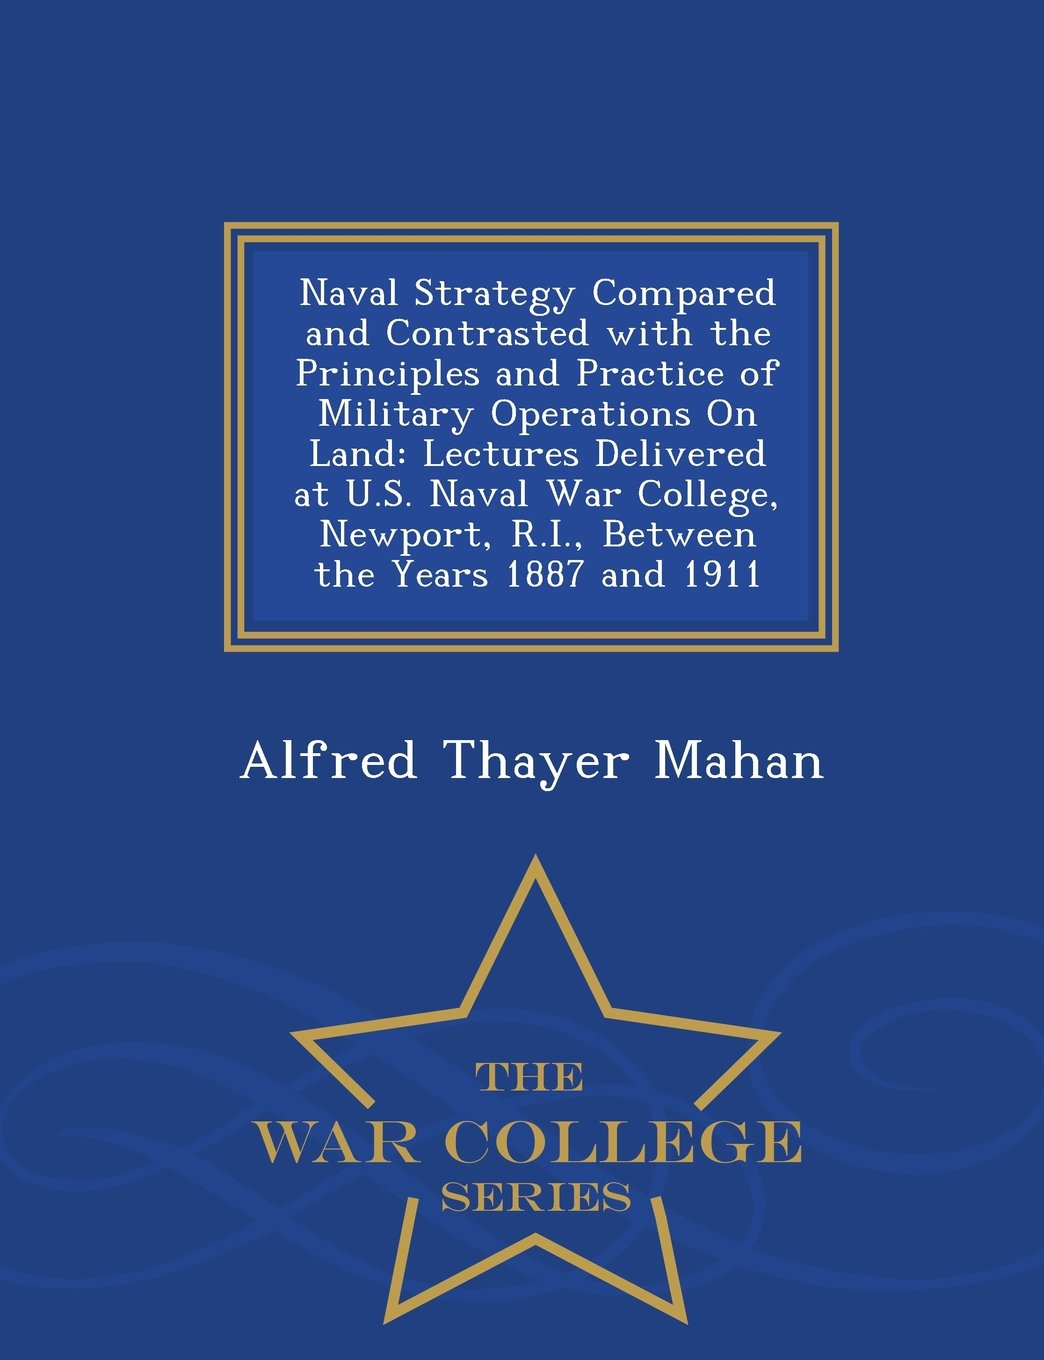 Read Online Naval Strategy Compared and Contrasted with the Principles and Practice of Military Operations On Land: Lectures Delivered at U.S. Naval War College, ... the Years 1887 and 1911 - War College Series PDF